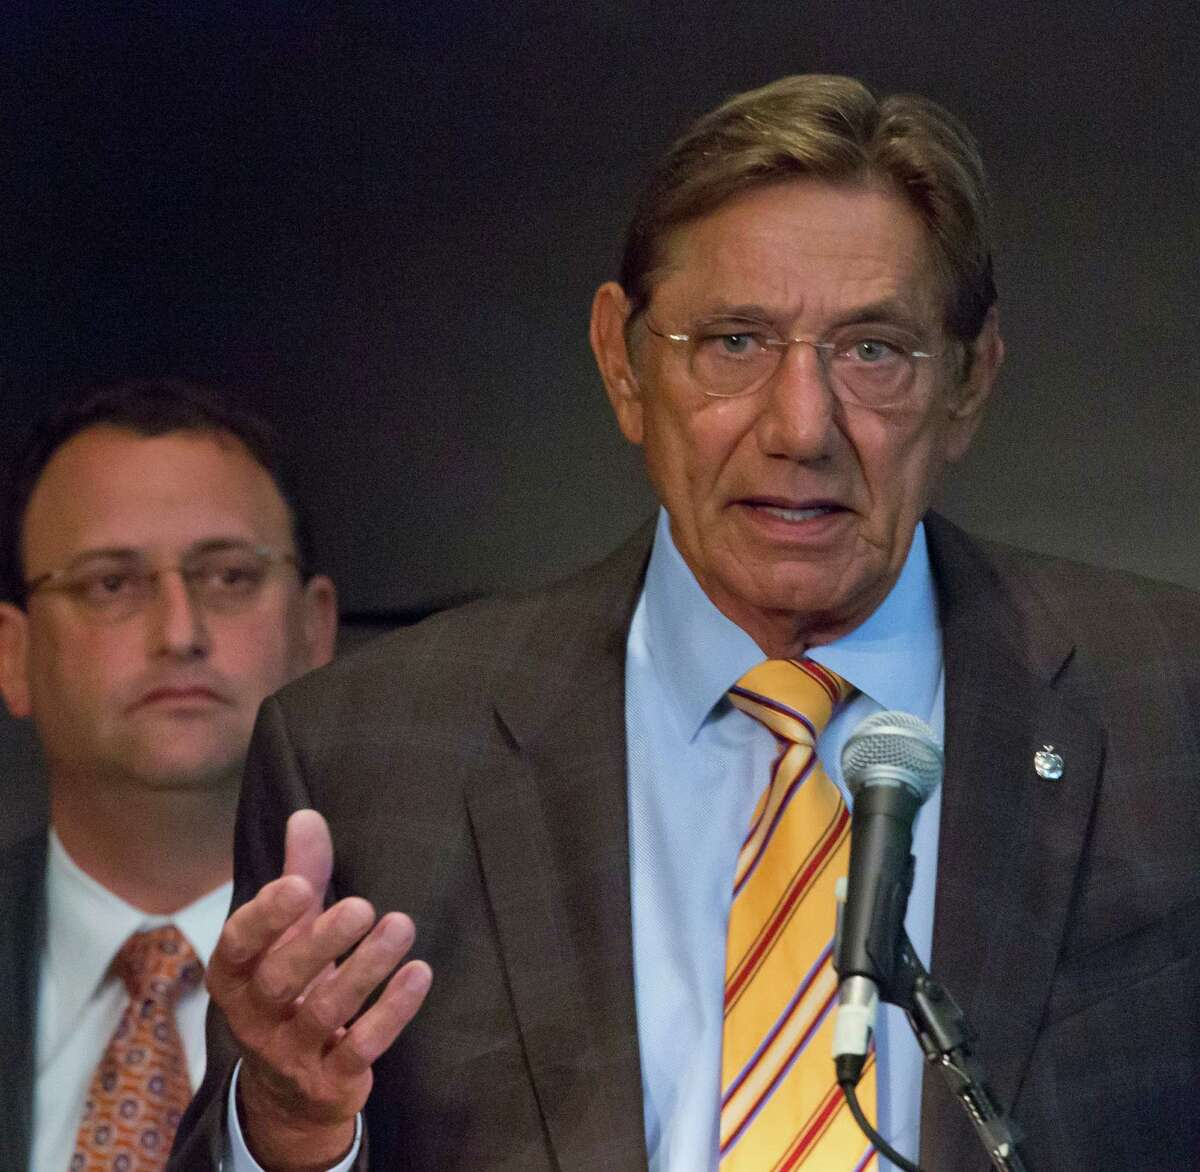 """John Couris, left, president and CEO of Jupiter Medical Center, listens as legendary New York Jets quarterback Joe Namath speaks during a press conference, Tuesday, Sept. 30, 2014 in New York. Namath shared his personal story of concussions after announcing the creation of the Joe Namath Medical Research Center at Jupiter Medical Center in Florida. The center, where Namath has gone for treatment, focuses on research to """"combat the debilitating effects of traumatic brain injuries,"""" according to a press release statement. (AP Photo/Bebeto Matthews)"""